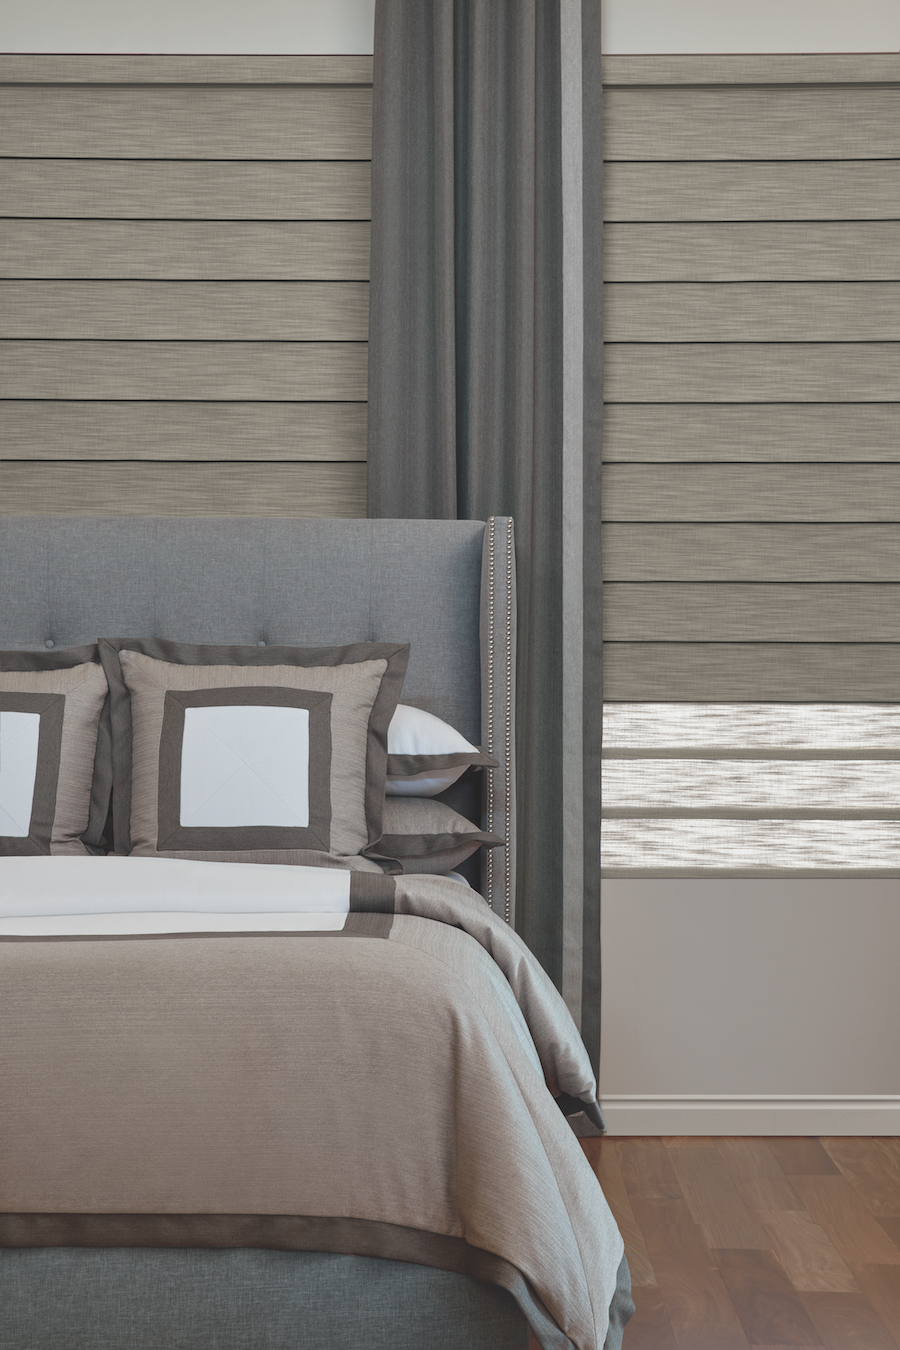 Master bedroom with vignette roman shades